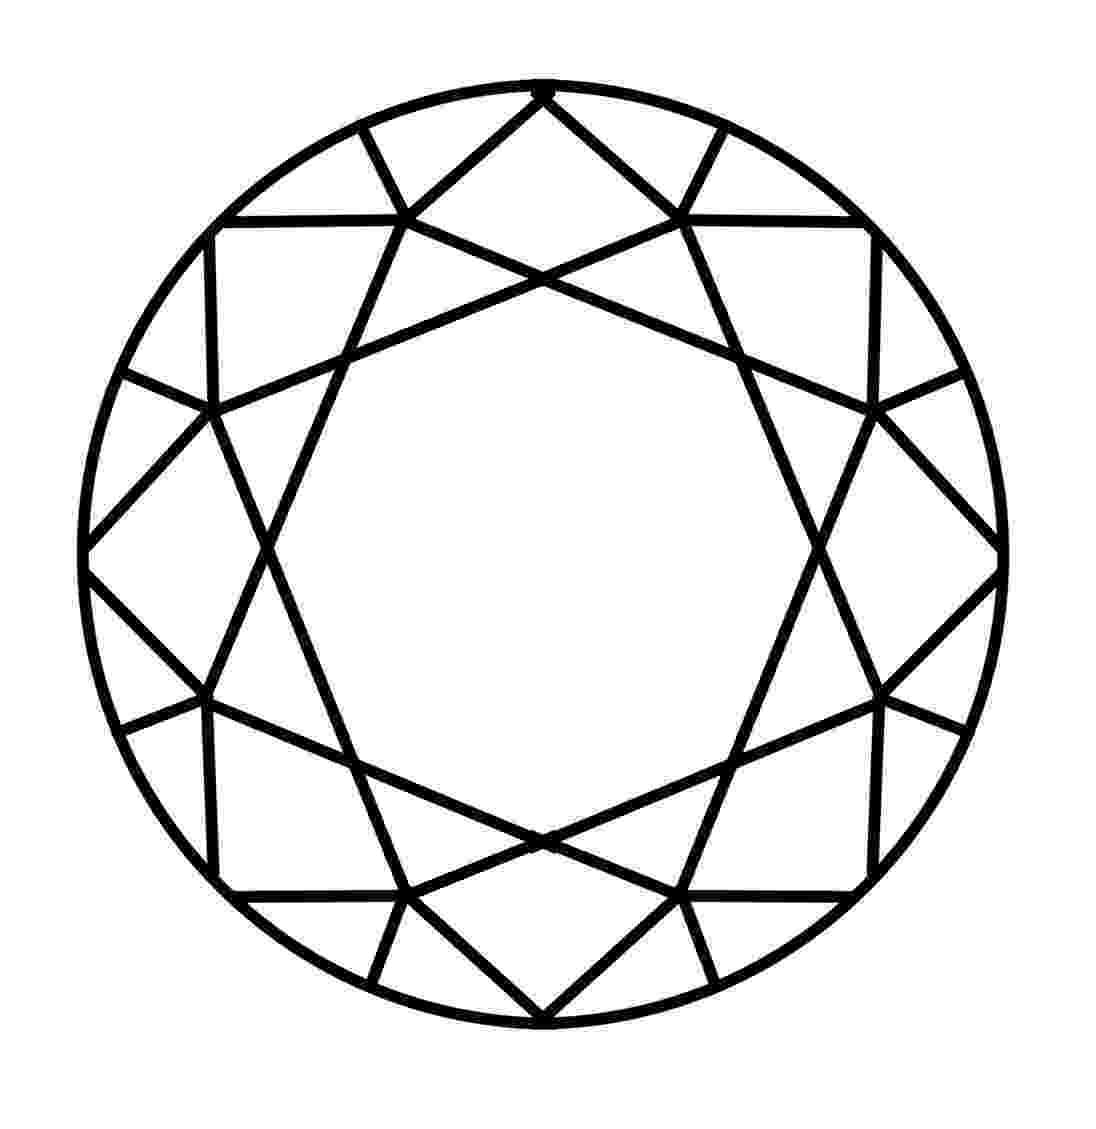 diamond coloring pages precious stones coloring pages to download and print for free diamond pages coloring